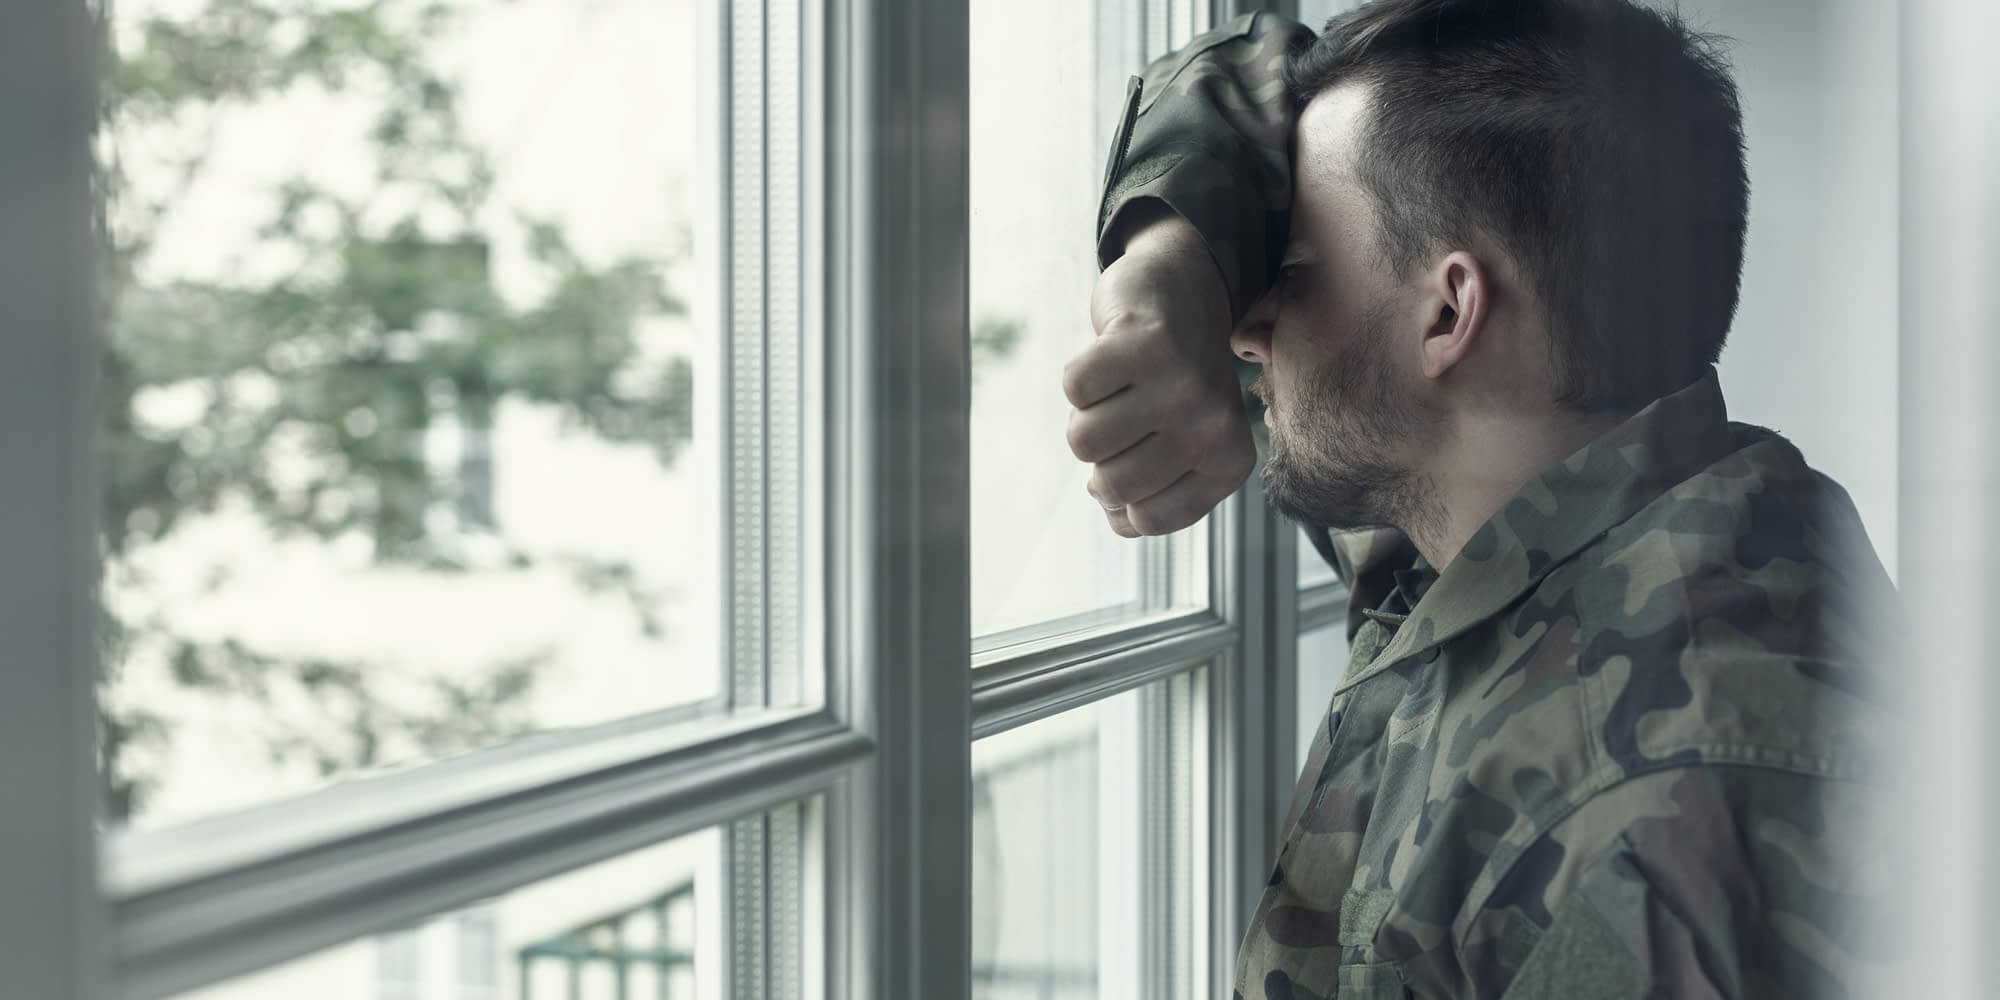 a person dealing with ptsd and drug addiction